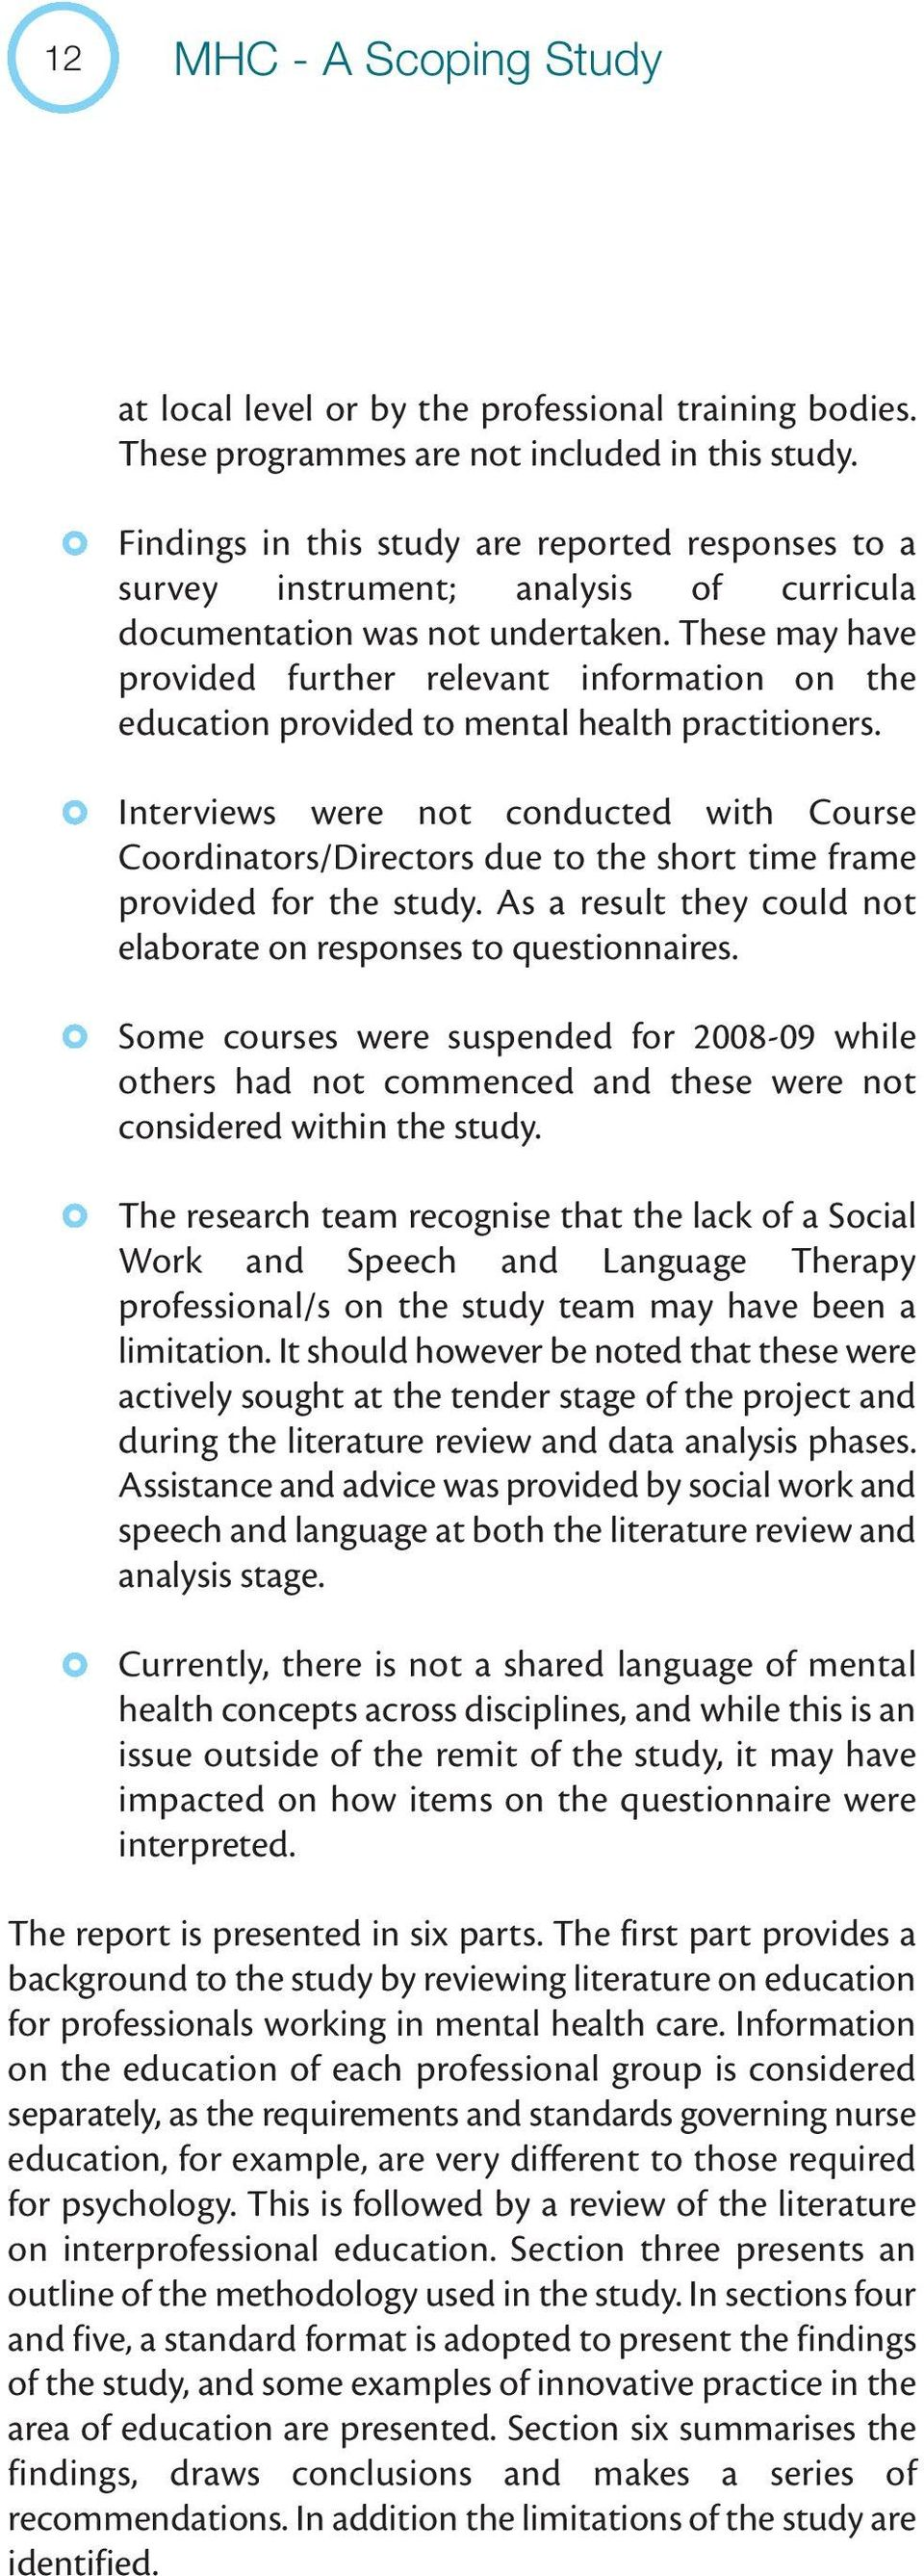 These may have provided further relevant information on the education provided to mental health practitioners.